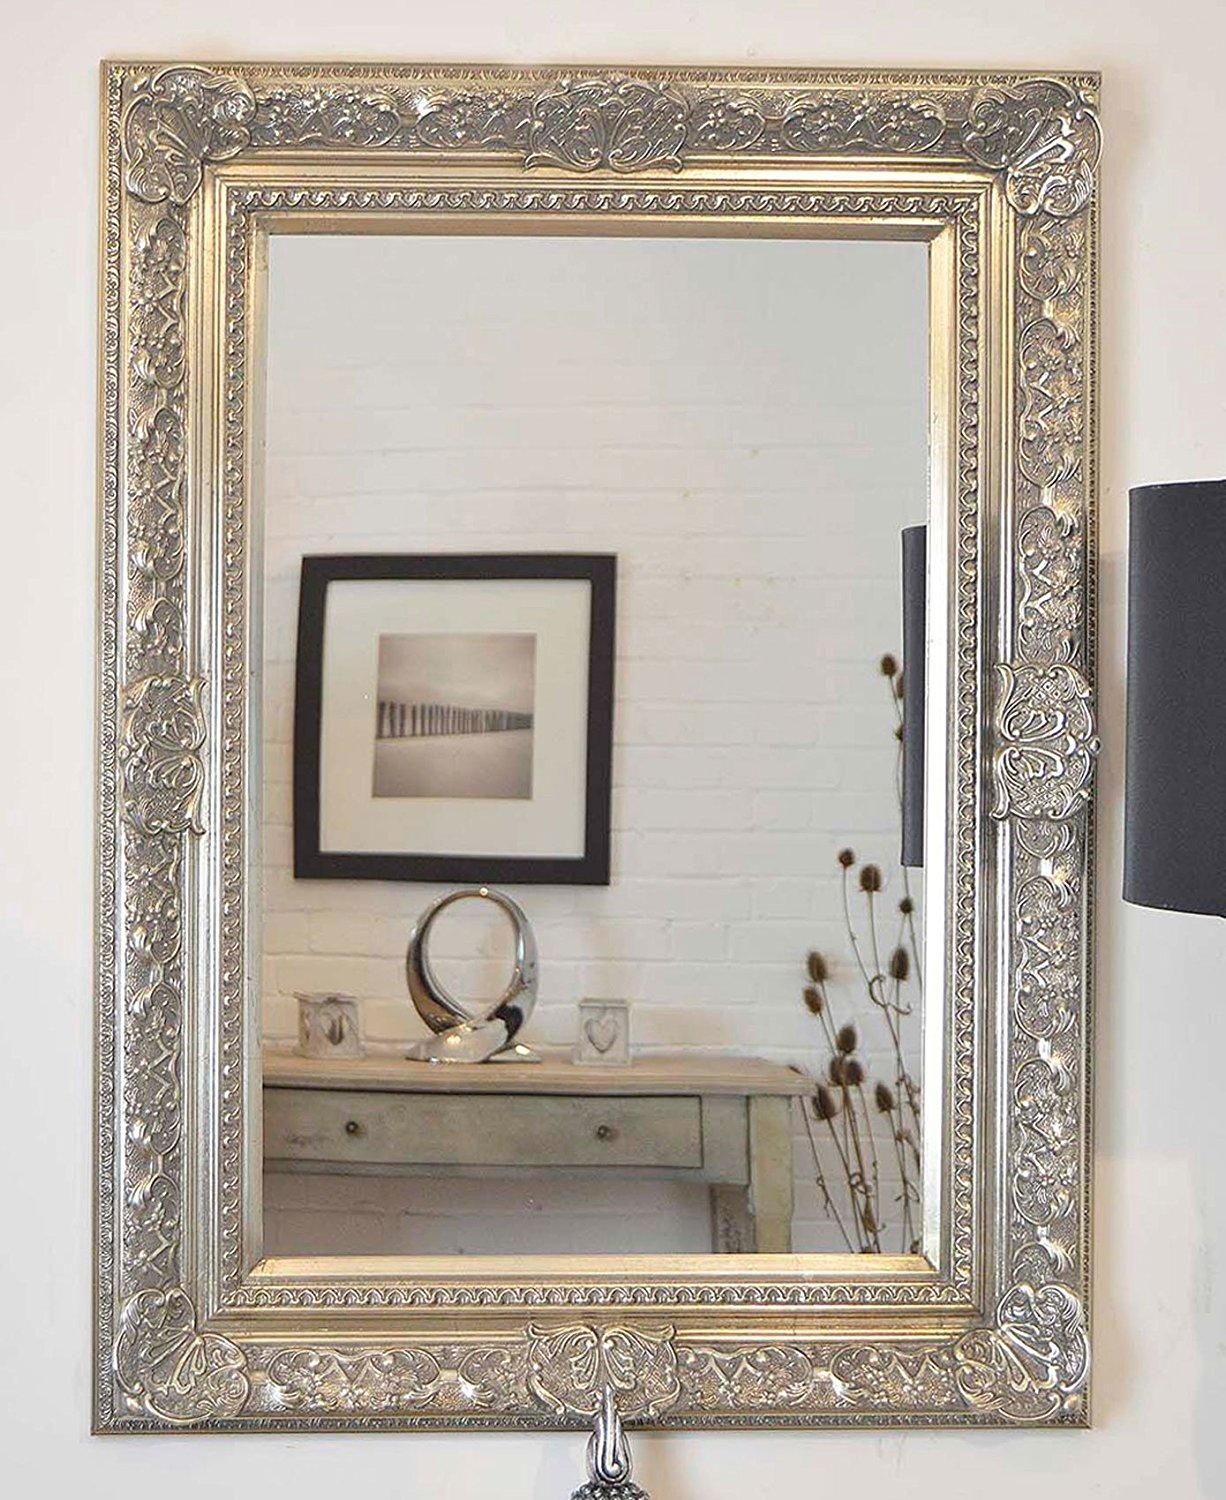 Ornate Bathroom Mirrors Uk | Home Within Ornate Bathroom Mirrors (Image 17 of 20)